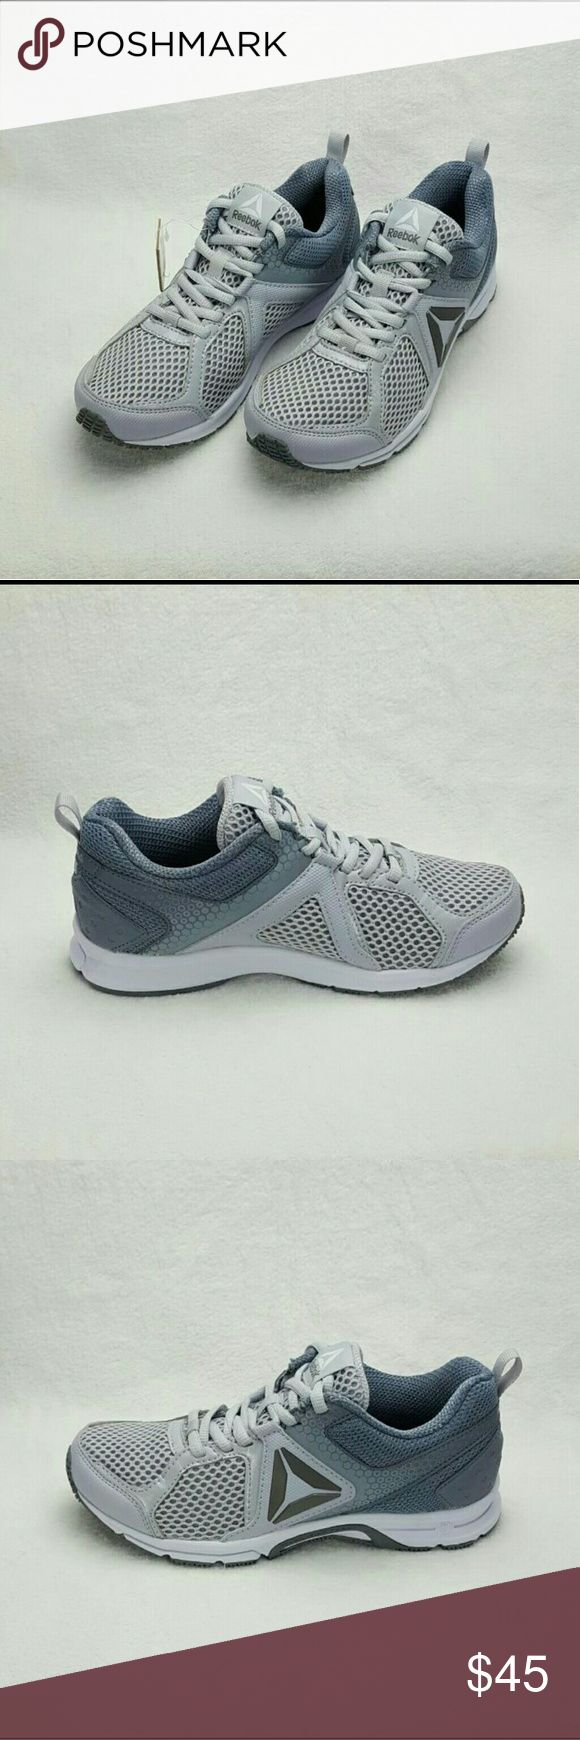 Reebok Runner for Women Reebok Runner for Women  Brand New with Box  -  Never Worn Size 6.5 Color  -  Gray Lace Up Heel Pull Loop Reebok Shoes Athletic Shoes